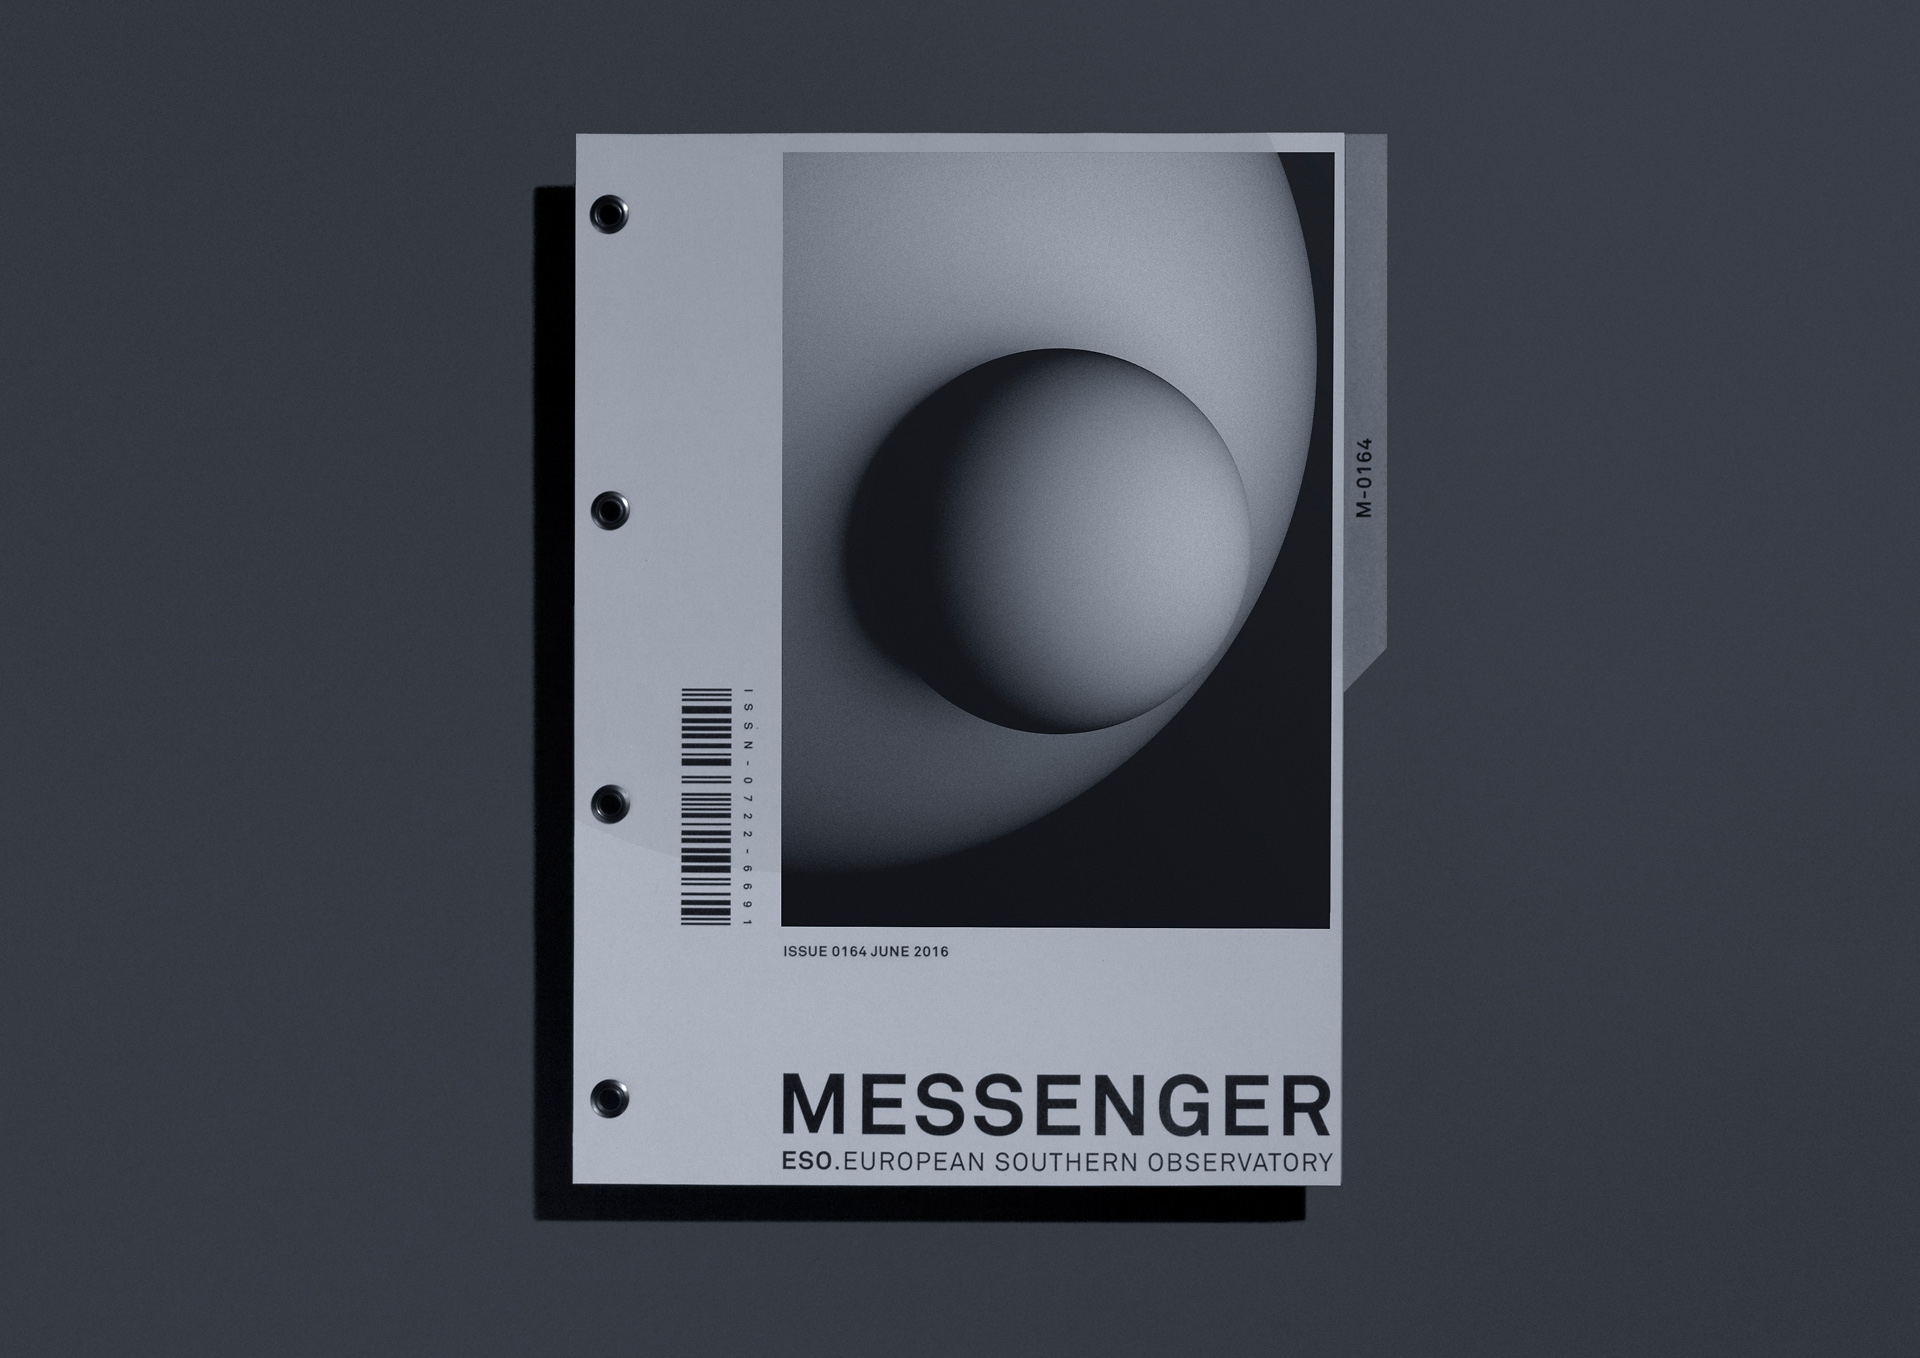 Malwin Béla Hürkey — Visual Communication European Southern Observatory — Identity